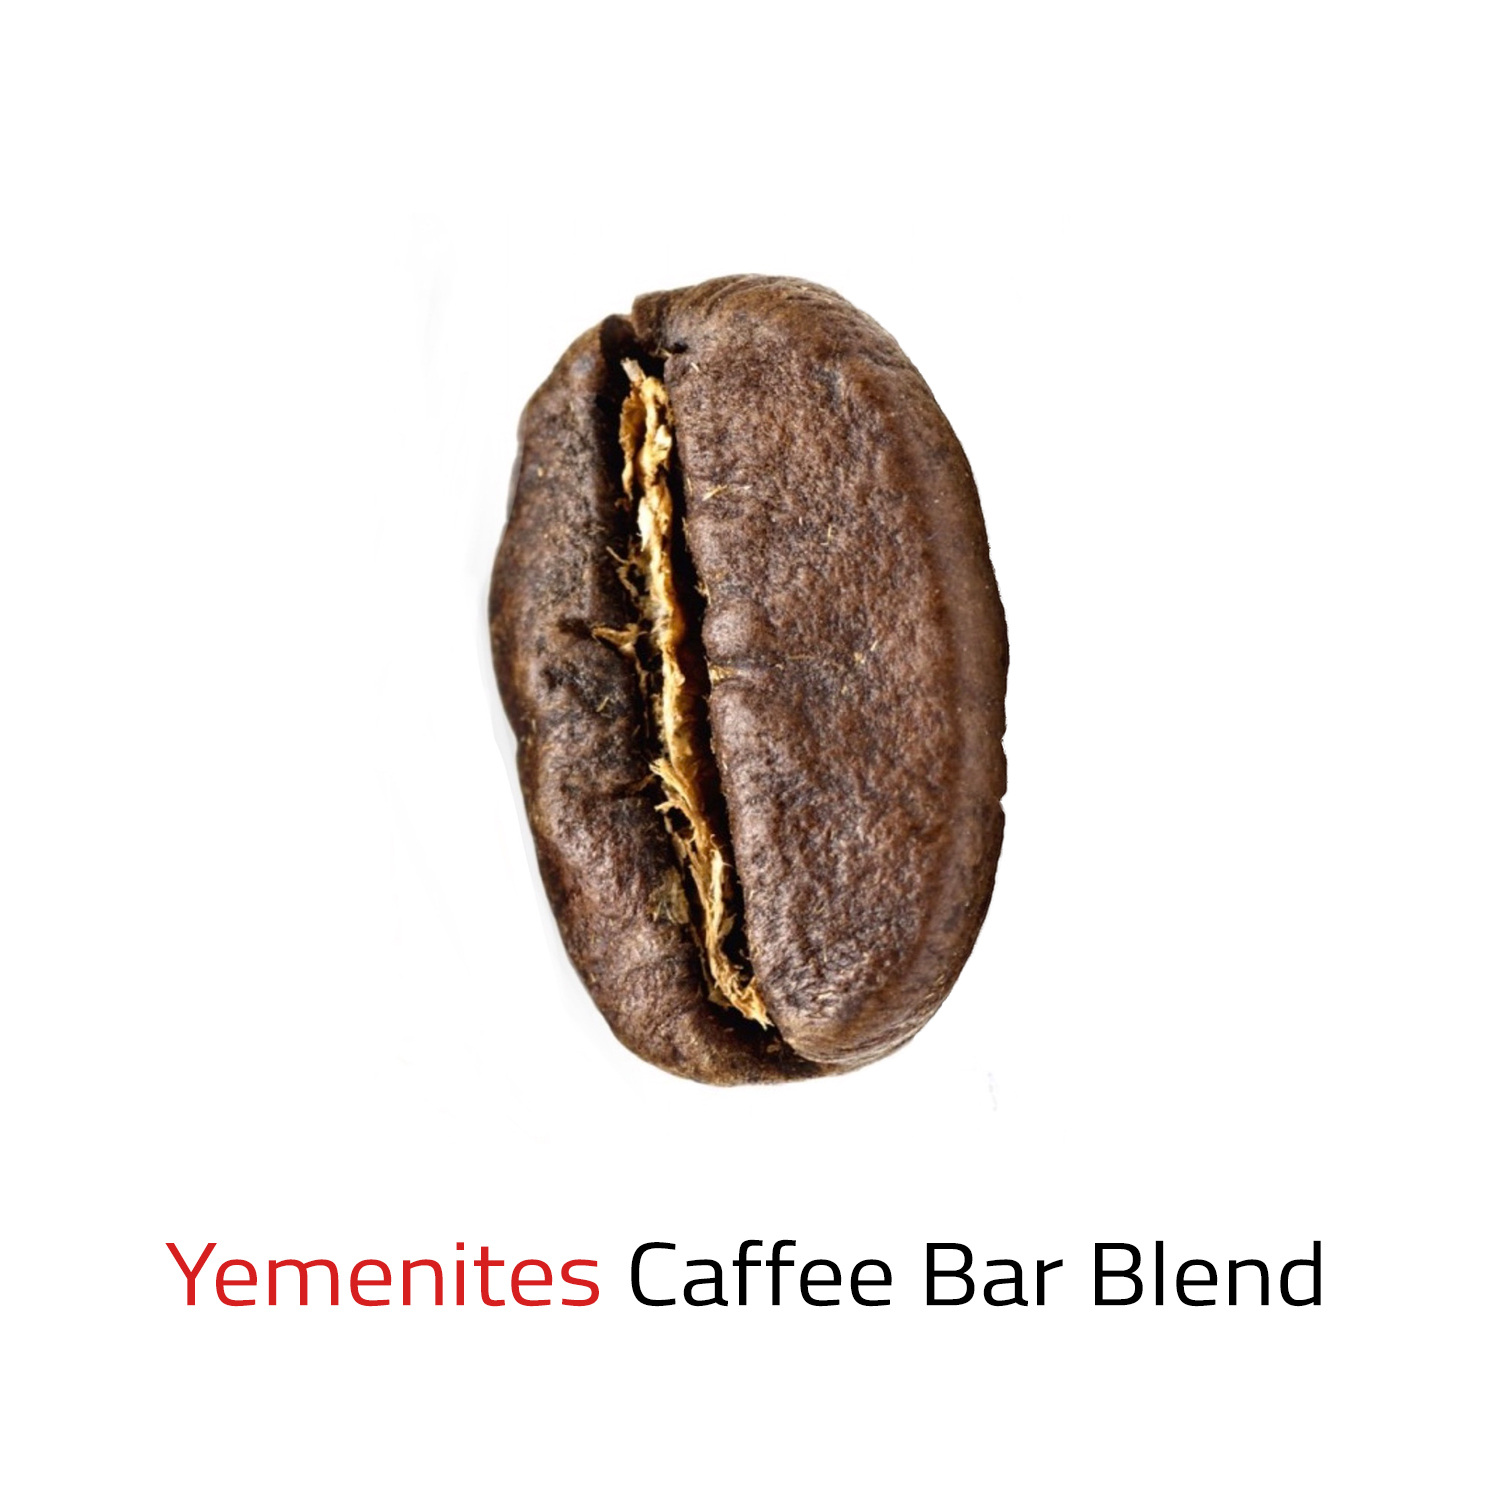 Yemenites Caffee Bar Blend 250g